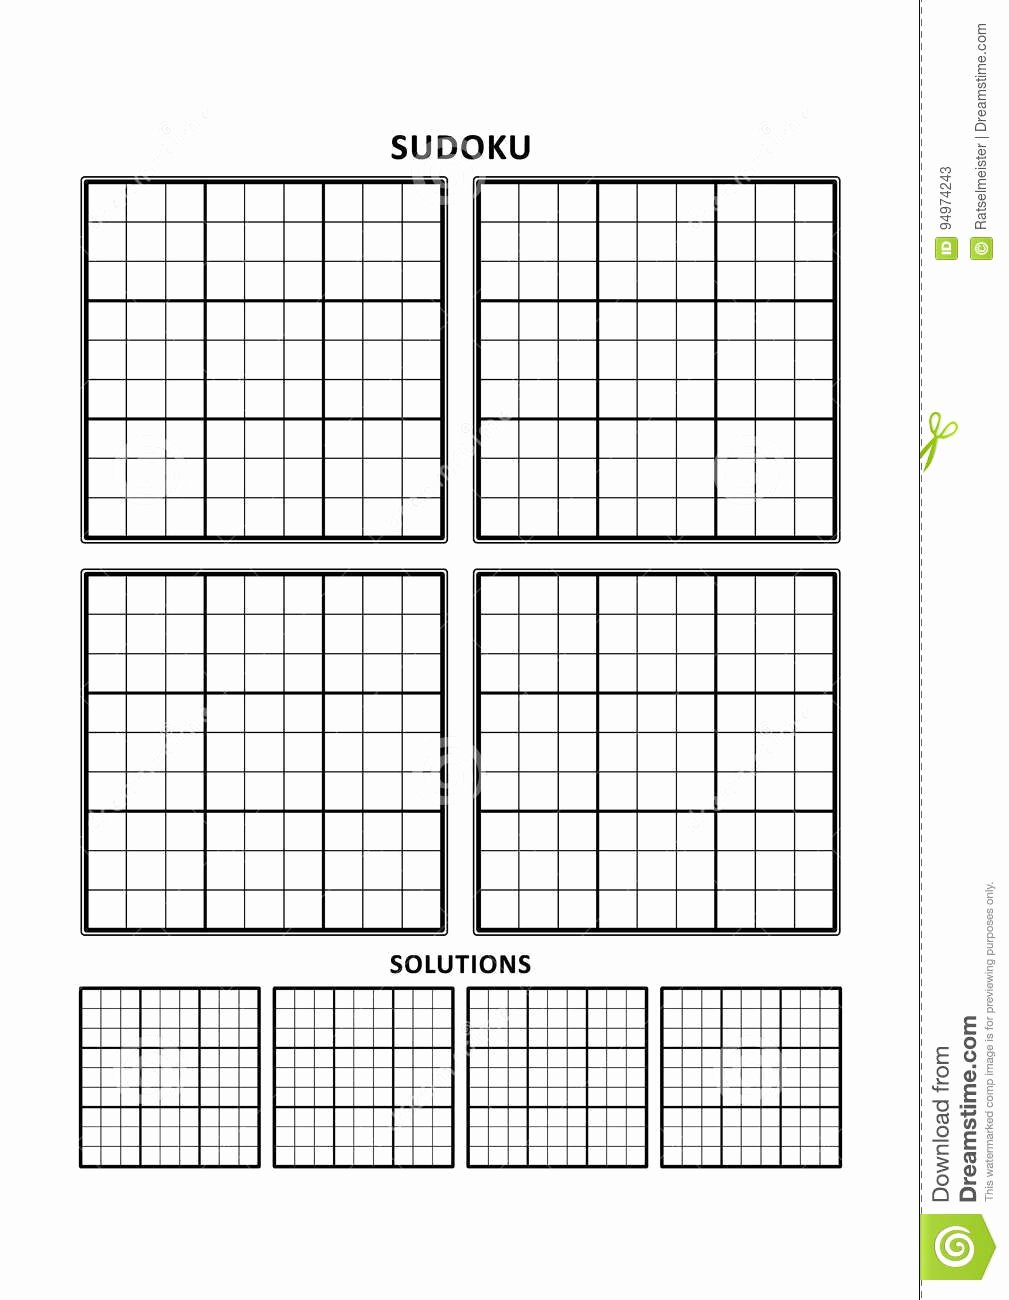 Sudoku Grid Template Awesome Sudoku Template Four Grids with solutions A4 Letter